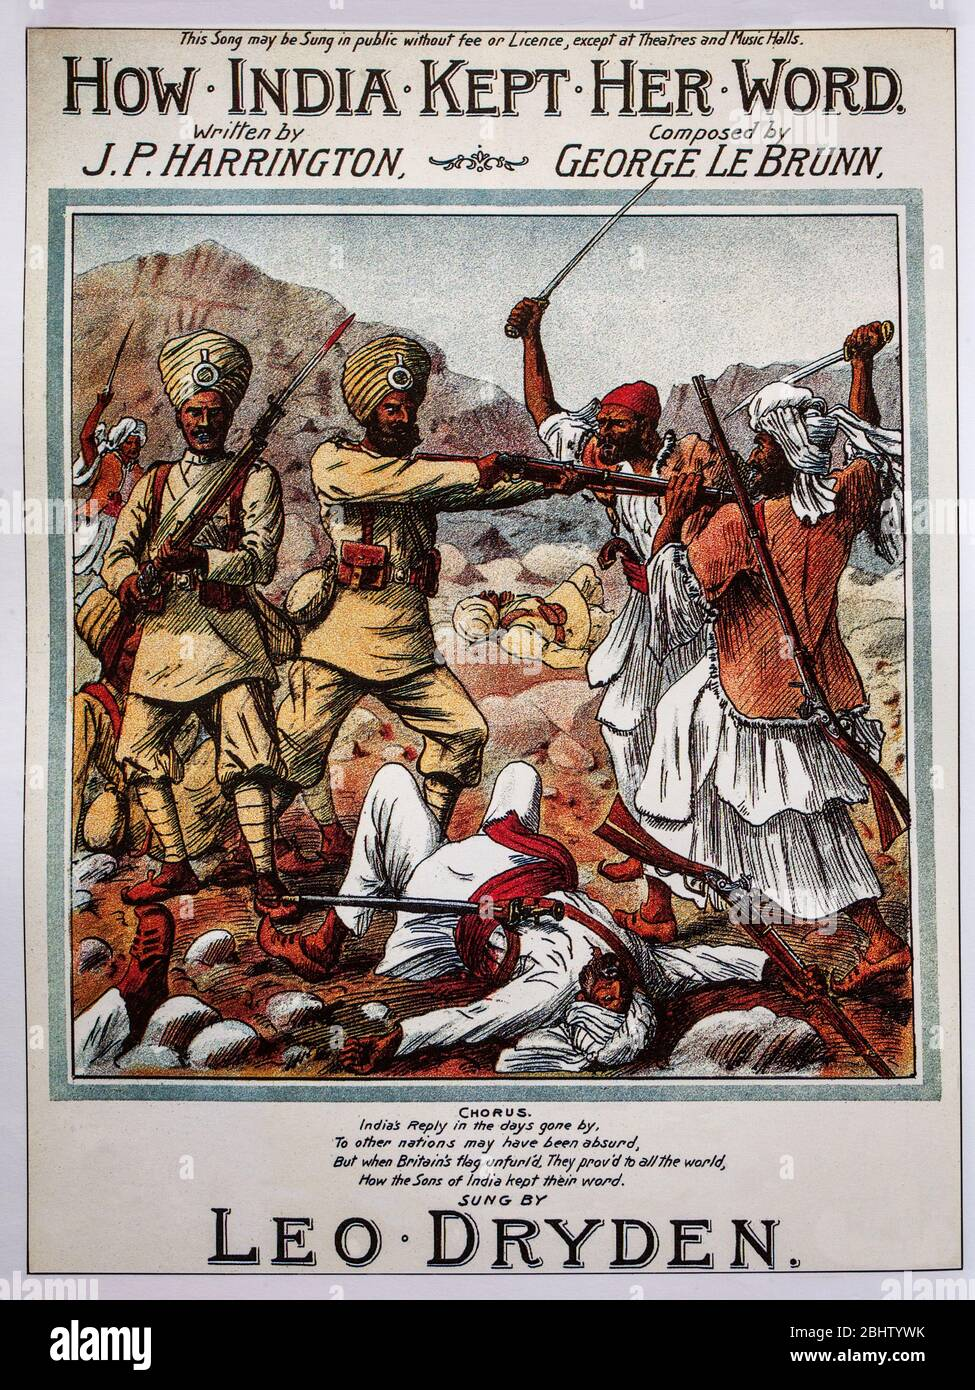 19th Century sheet music cover extolling the loyalty of Indian soldiers under British command during the British Raj. Stock Photo